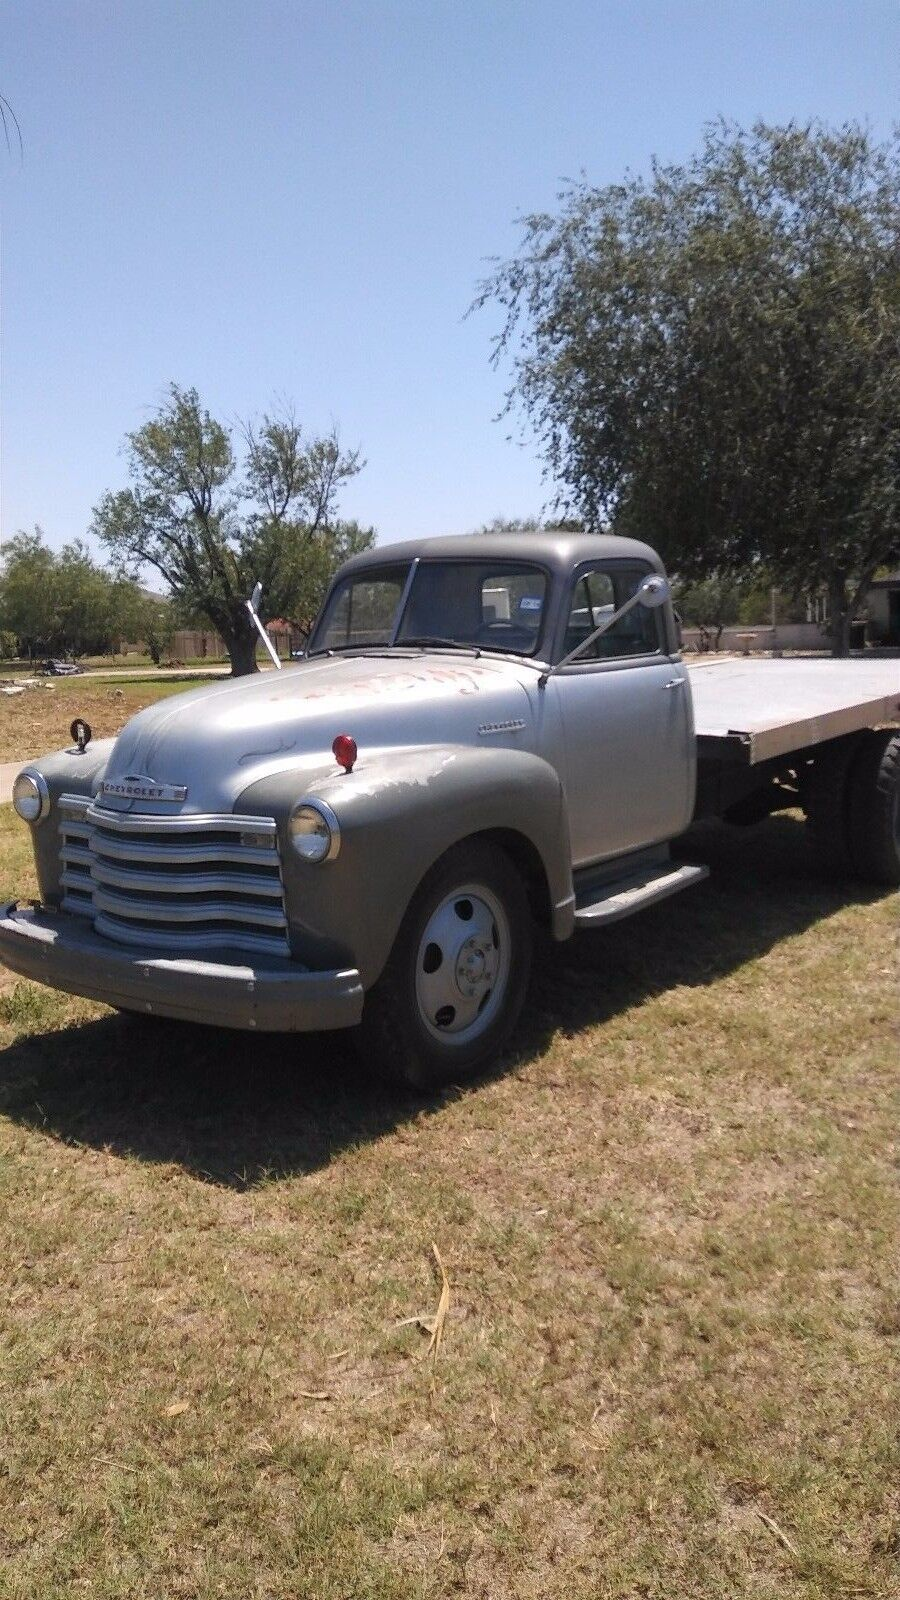 1951 Chevy 3800 Flatbed Truck Rat Rod Hot Rod Project - Used Chevrolet Other Pickups for sale in ...